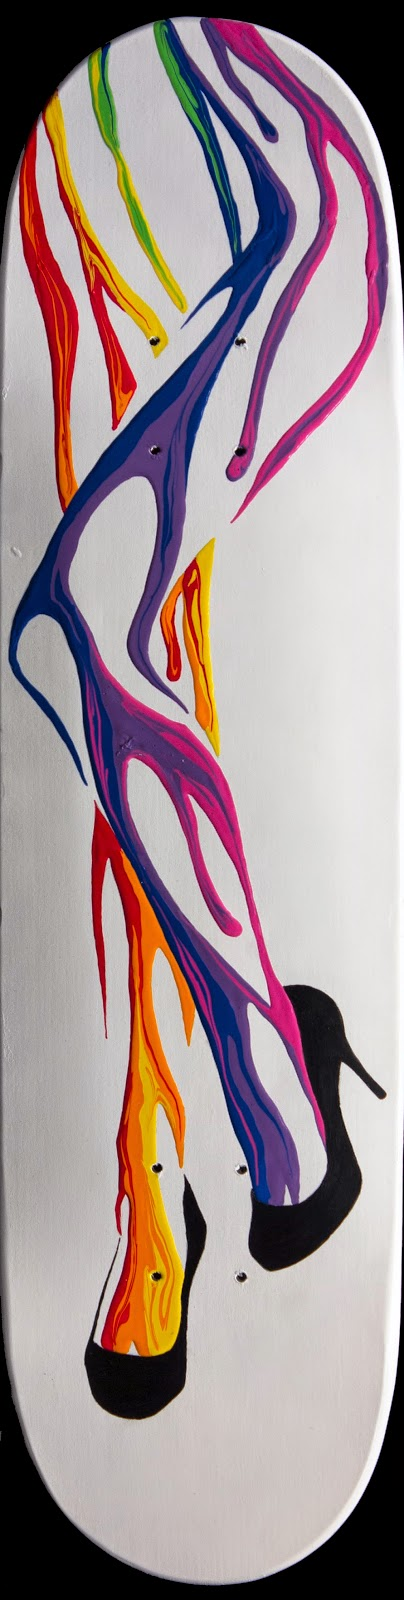 Surreal pop art Painting of woman's legs and feet wearing louboutin style stilettos creating using dripping colorful acrylic rainbow paint.